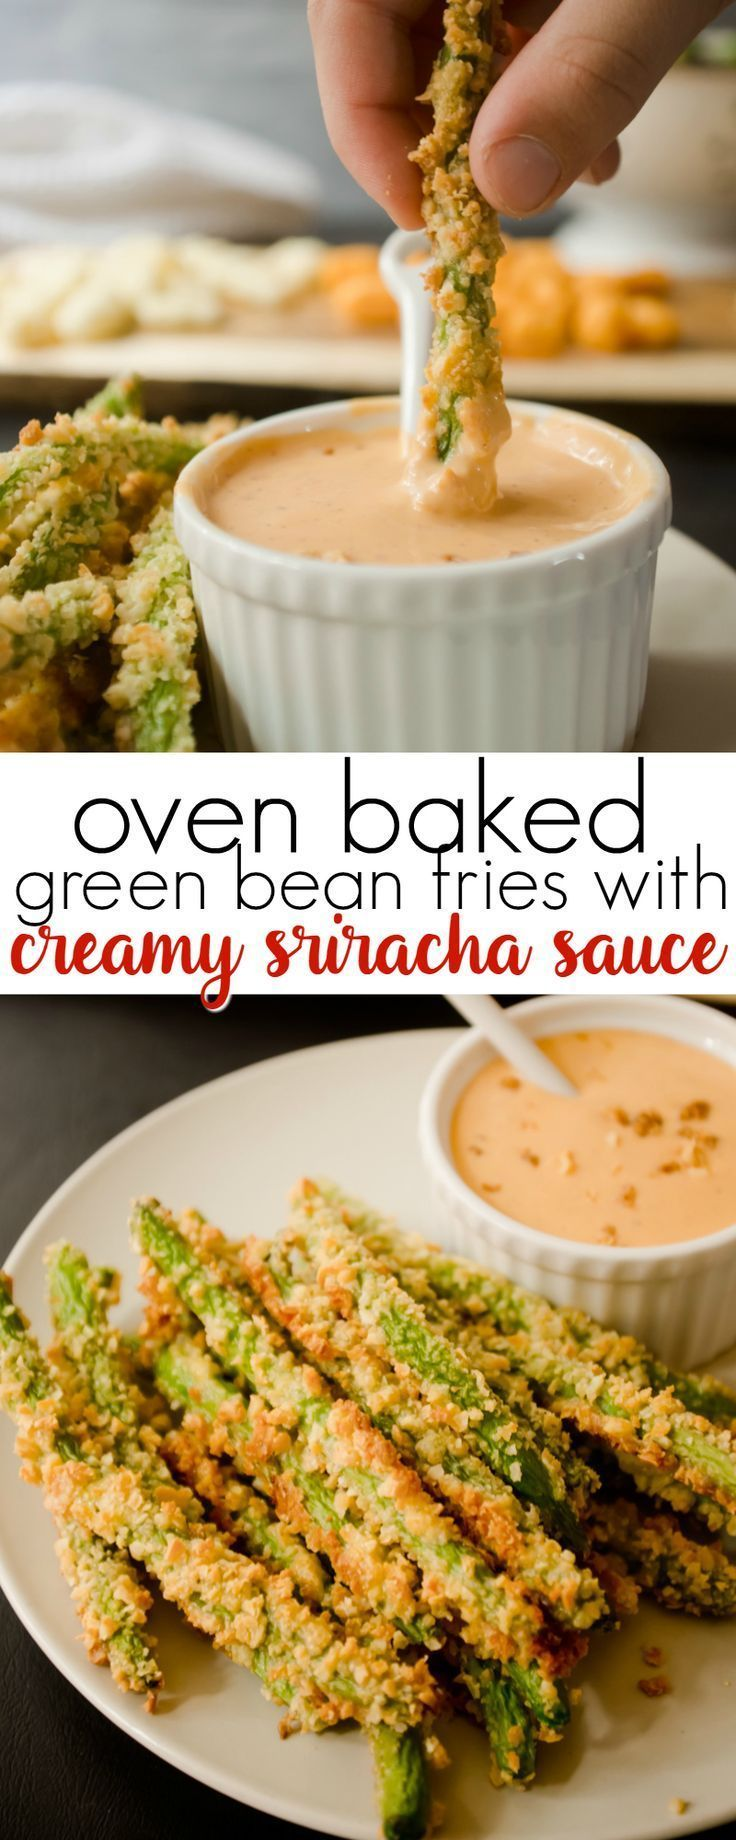 These Oven Baked Green Bean Fries take only 15 minutes to make and are served with a Creamy Sriracha Dipping Sauce!